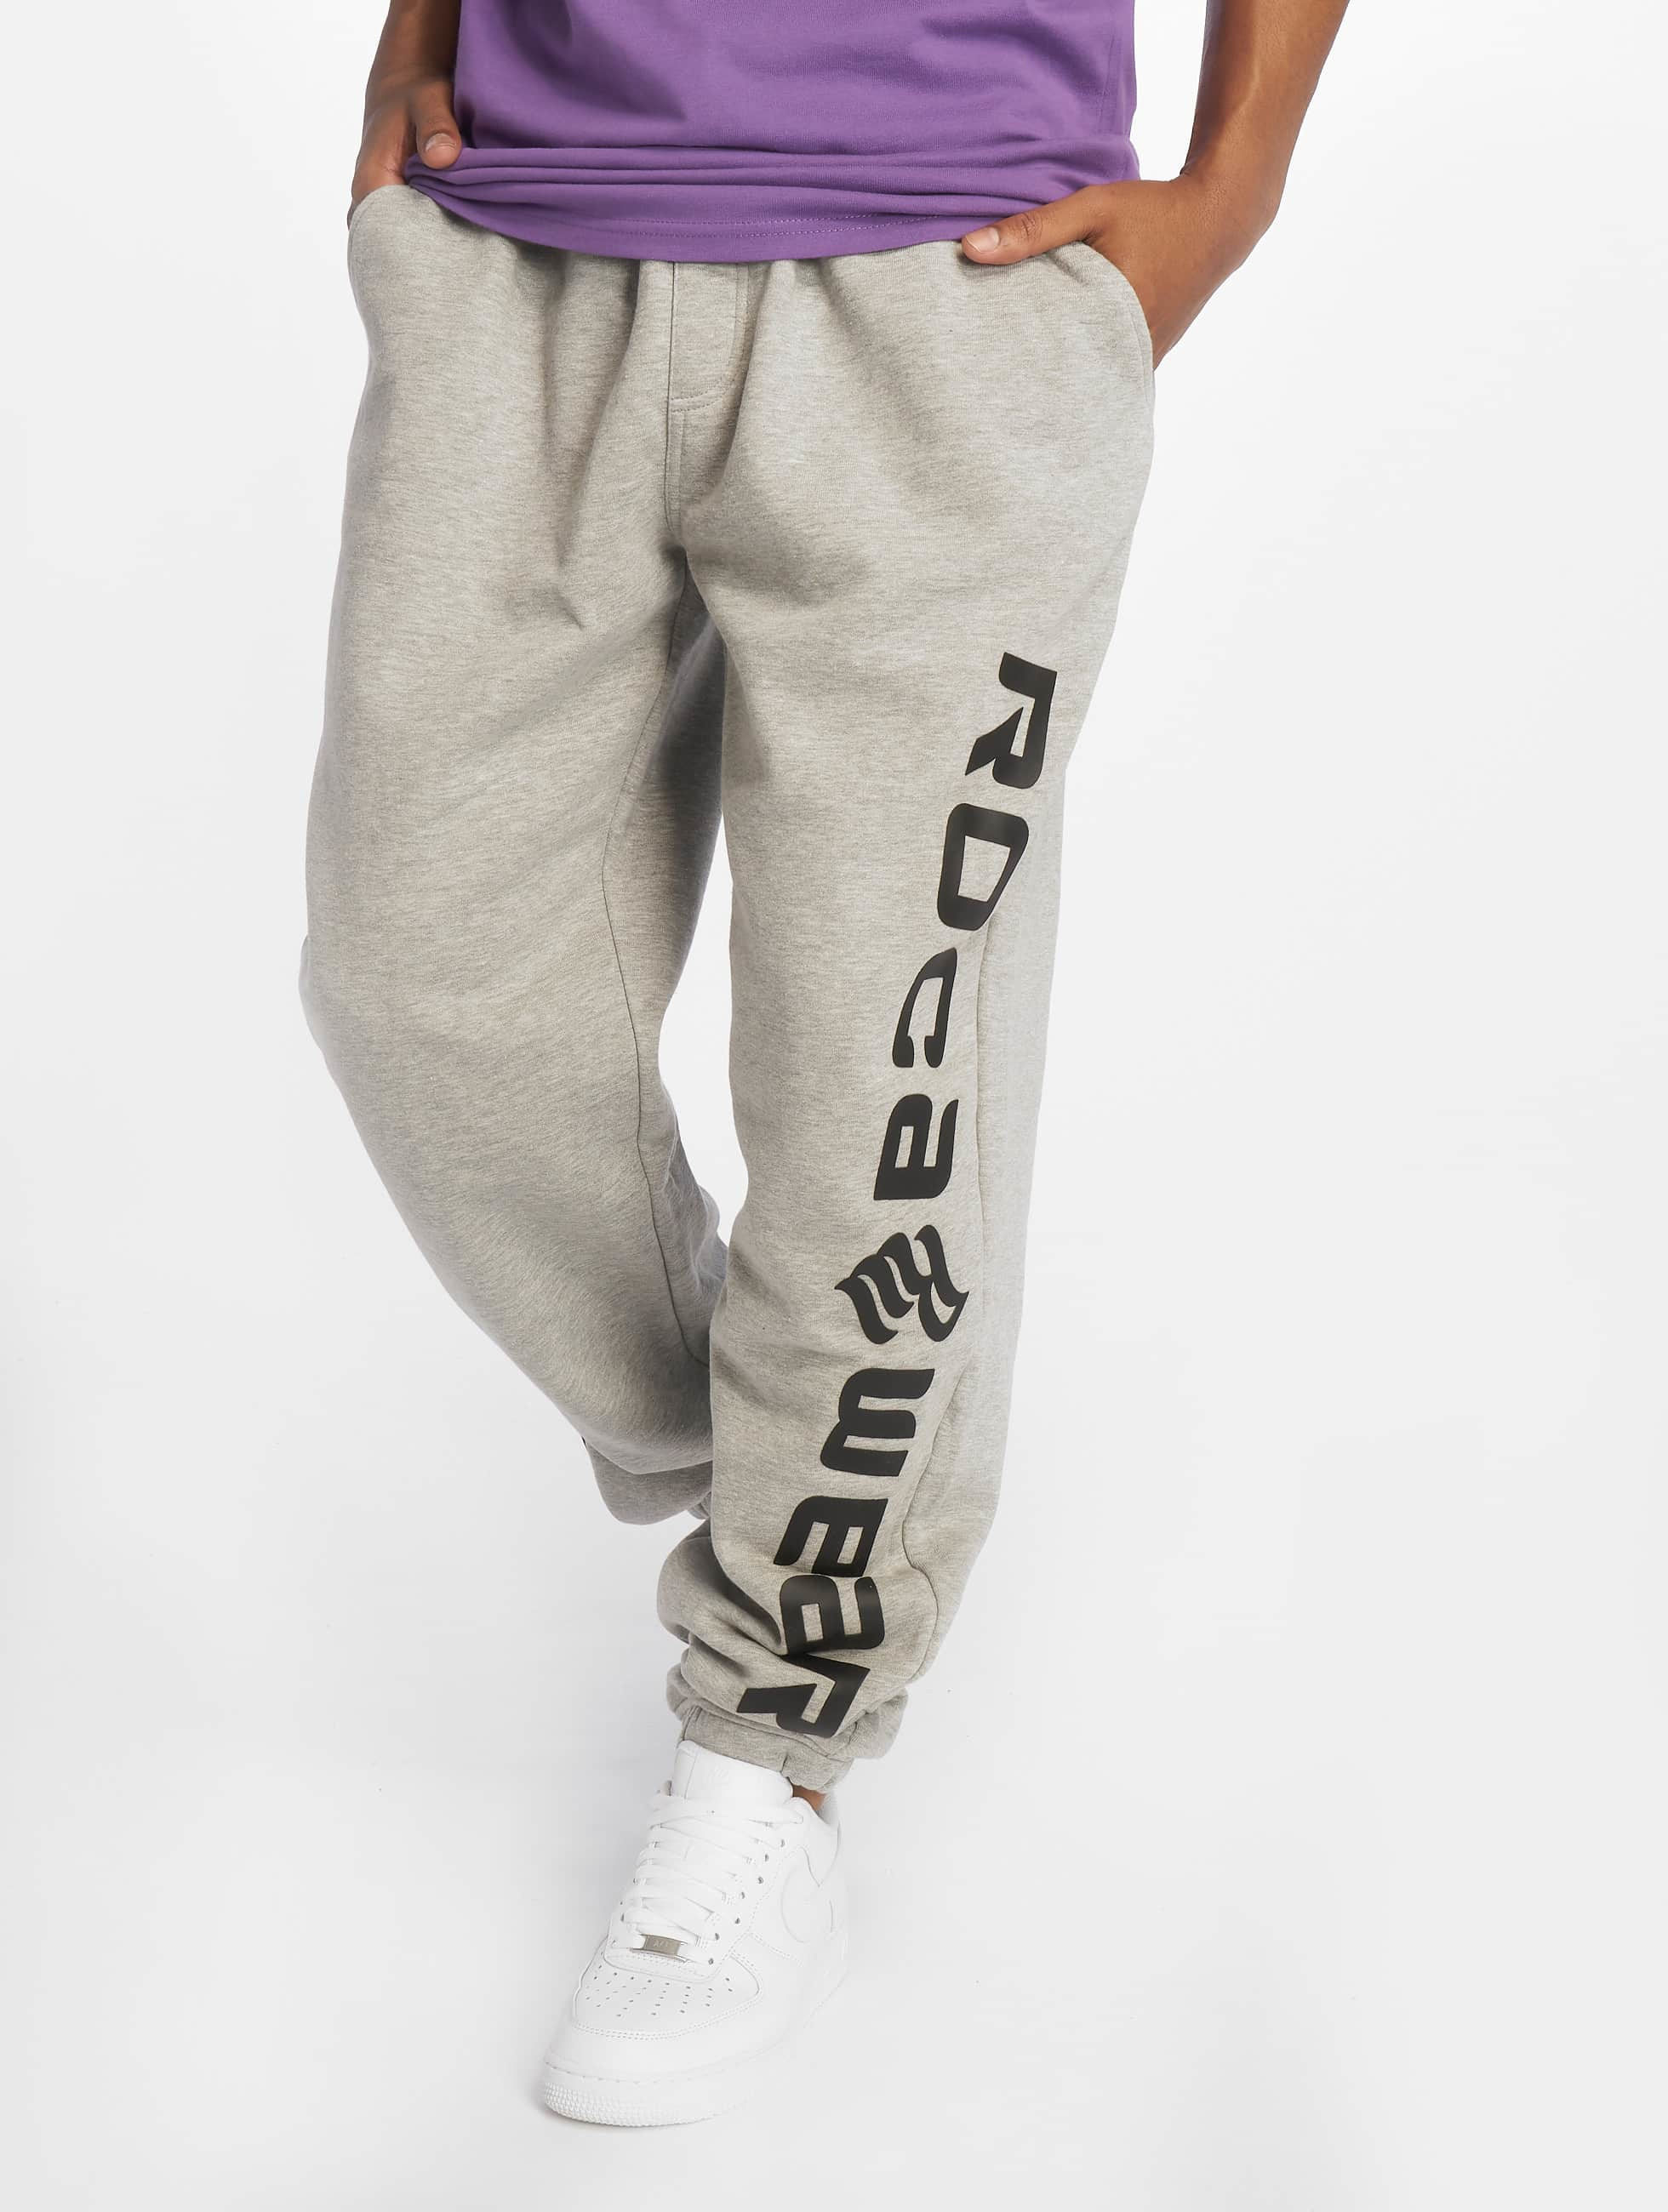 Rocawear / Sweat Pant Basic in grey S